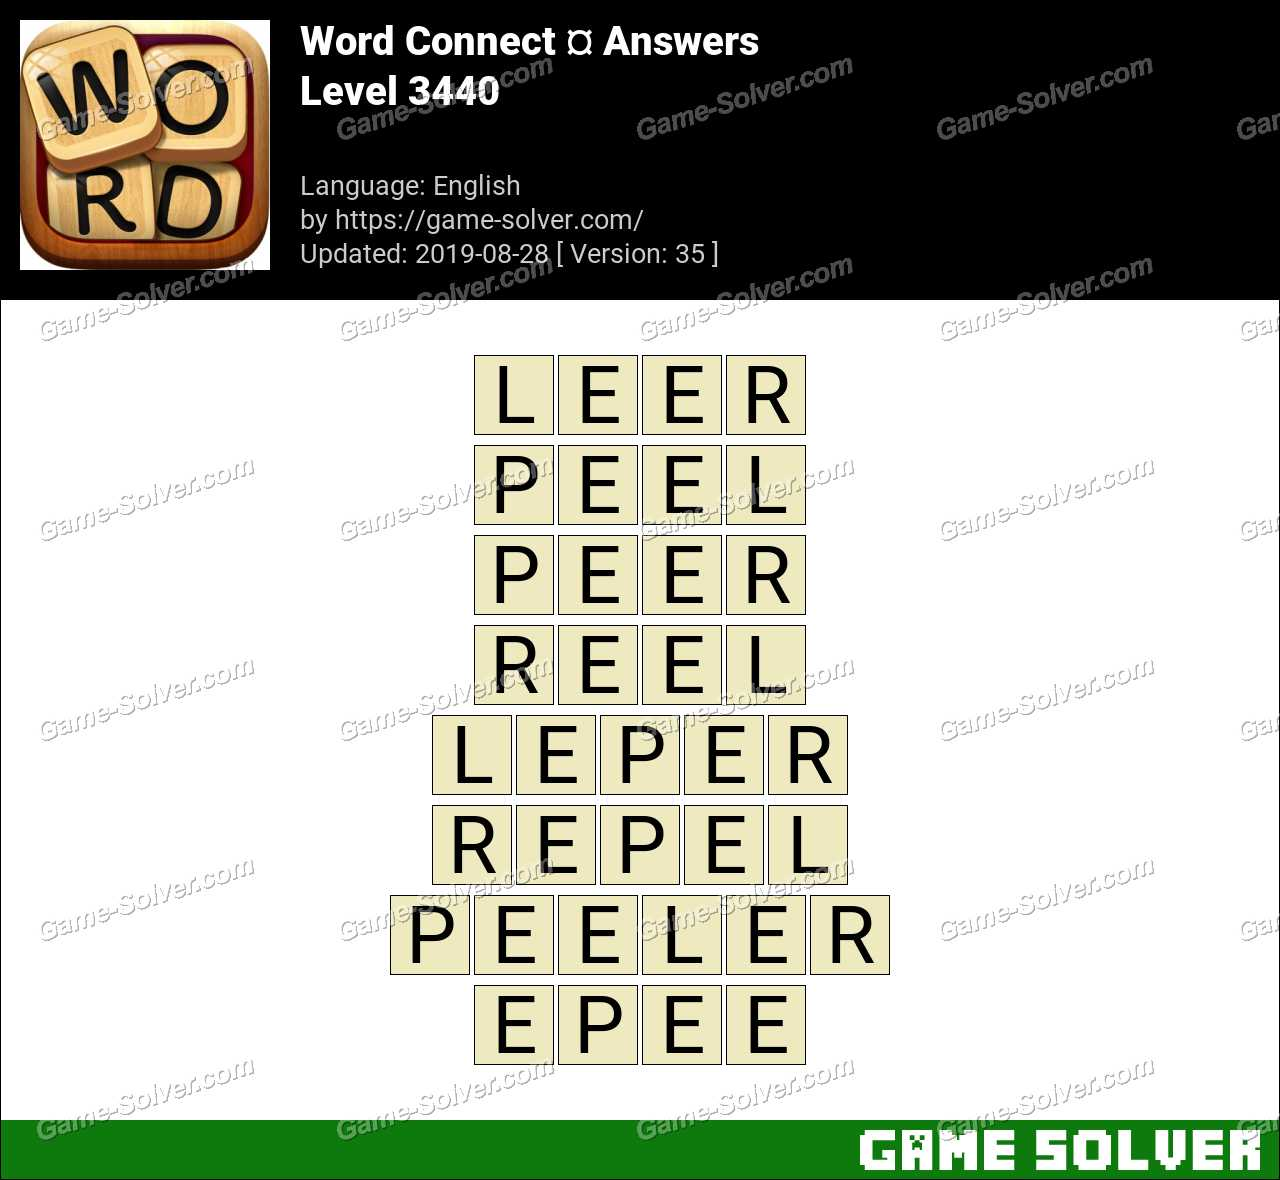 Word Connect Level 3440 Answers